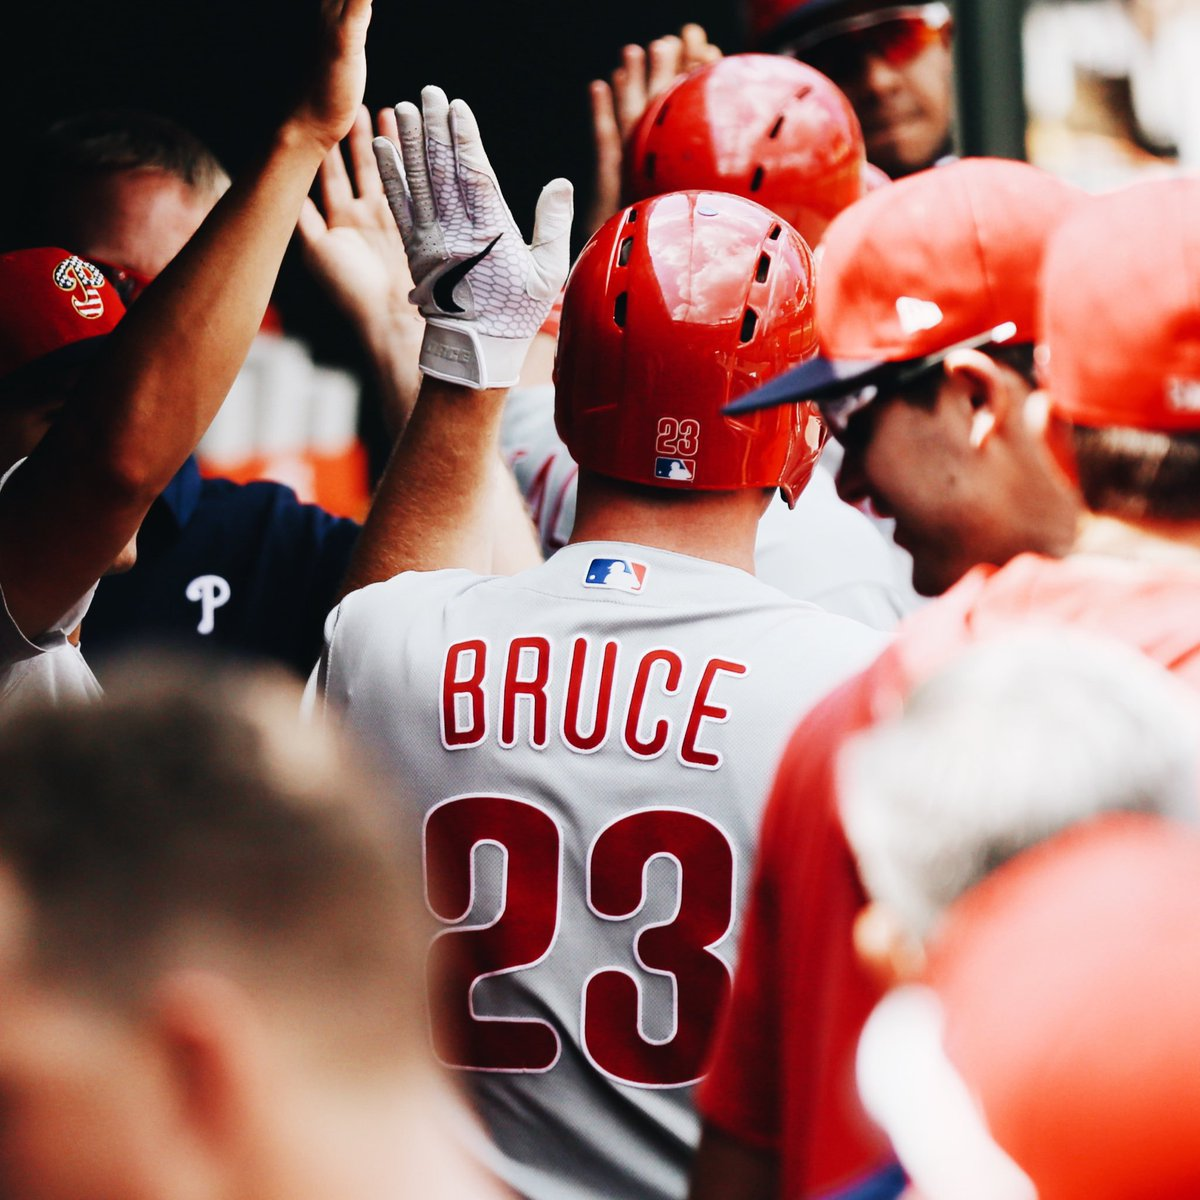 @Phillies's photo on Jay Bruce